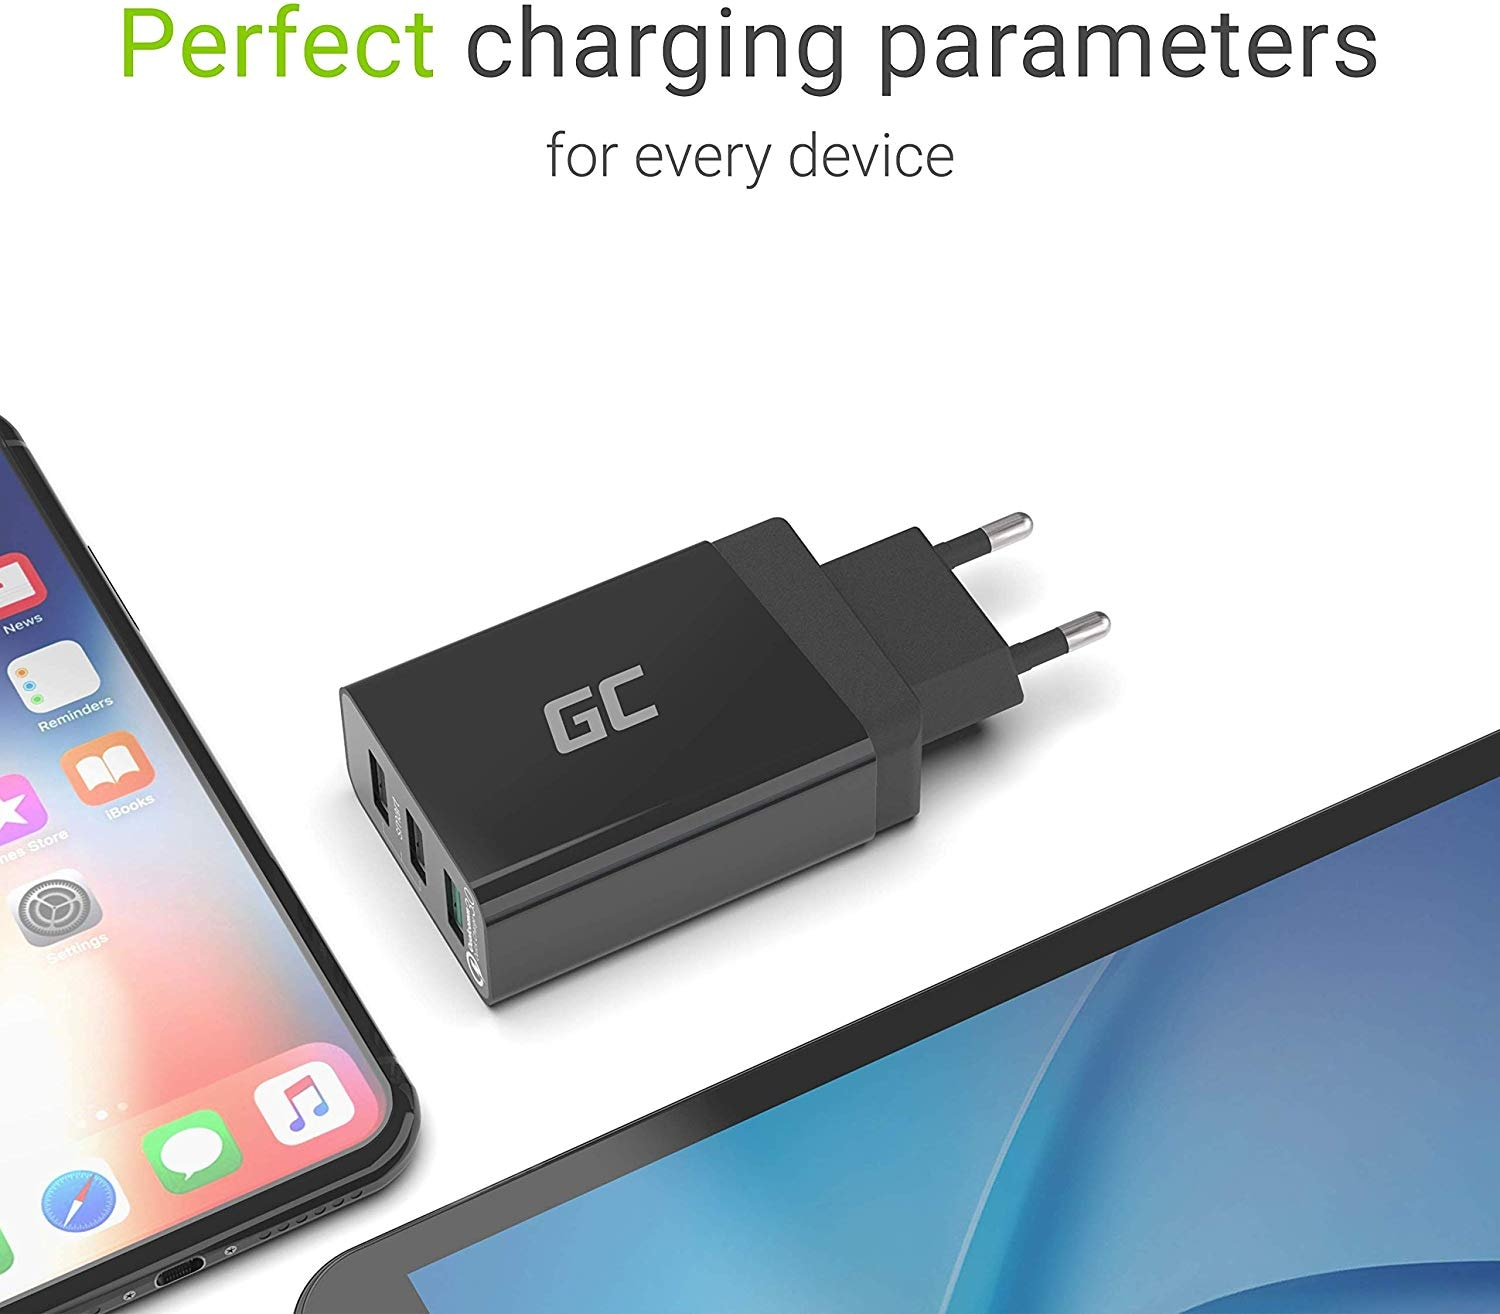 GC® Universal Charger 30W 3-Port USB with QC Quick Charge 3.0 for iPhone iPad Samsung Honor HTC Huawei LG Sony - 5